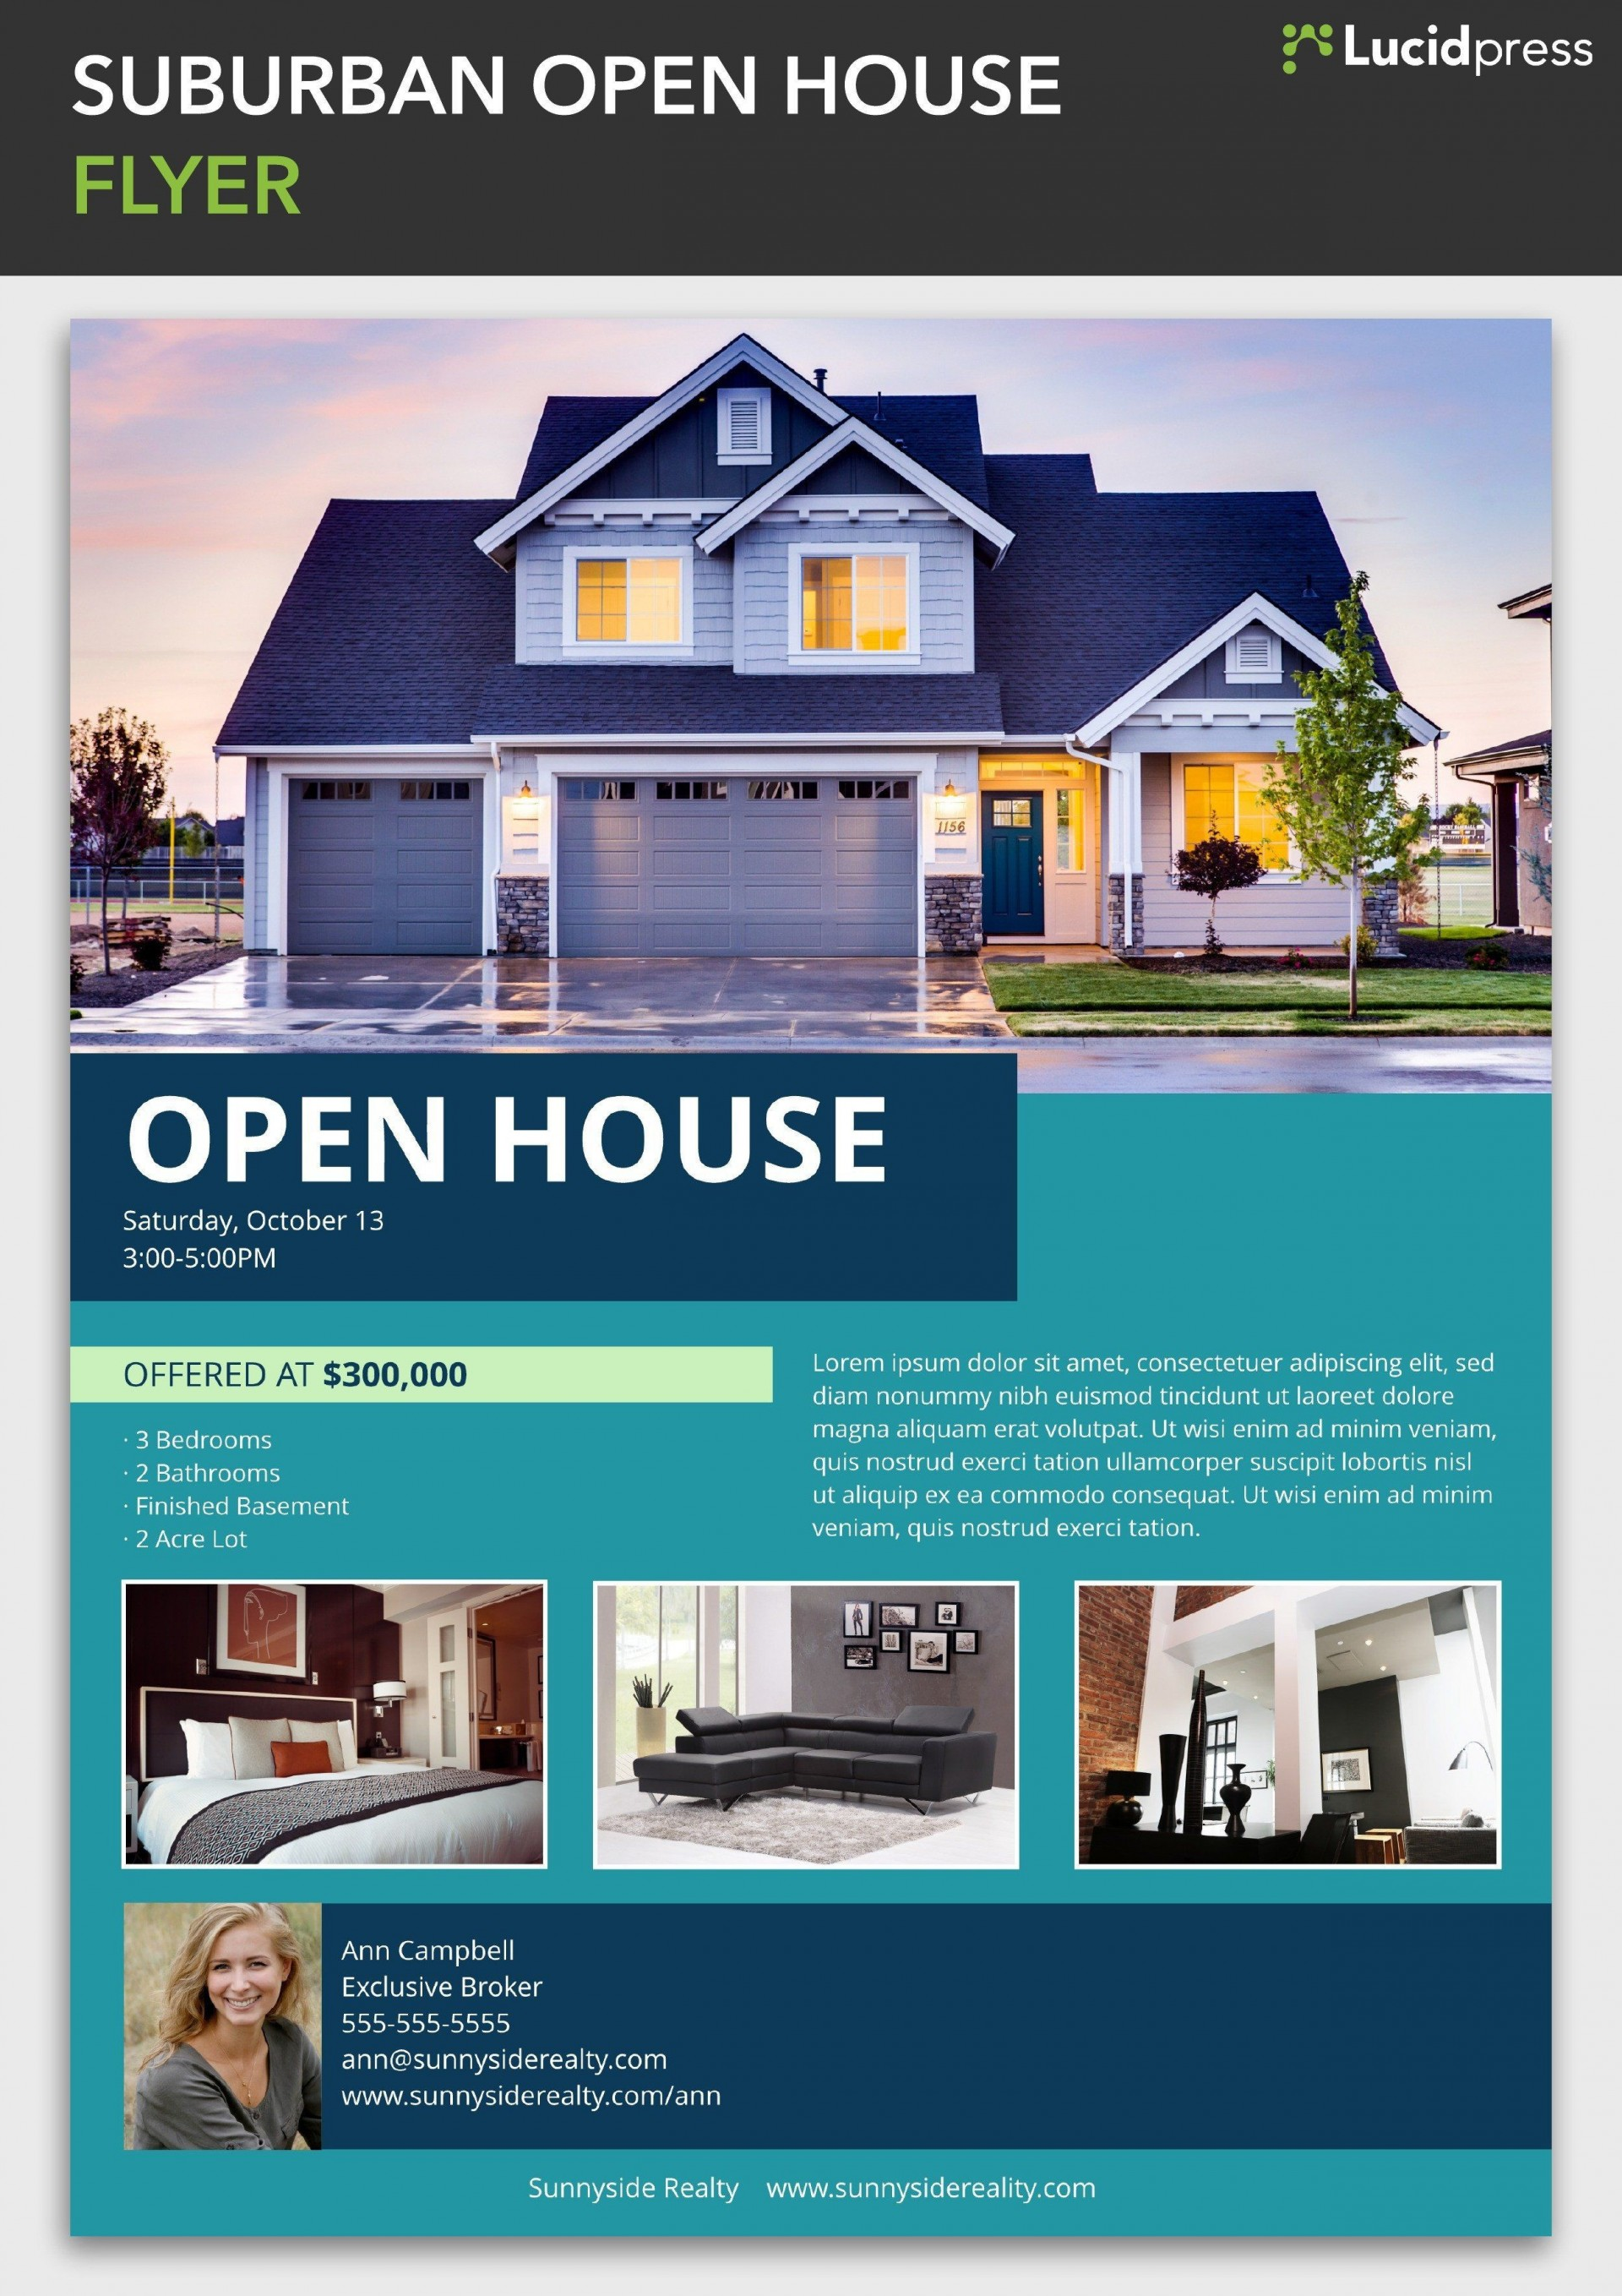 002 Magnificent Open House Flyer Template High Def  Templates Word Free School Microsoft1920